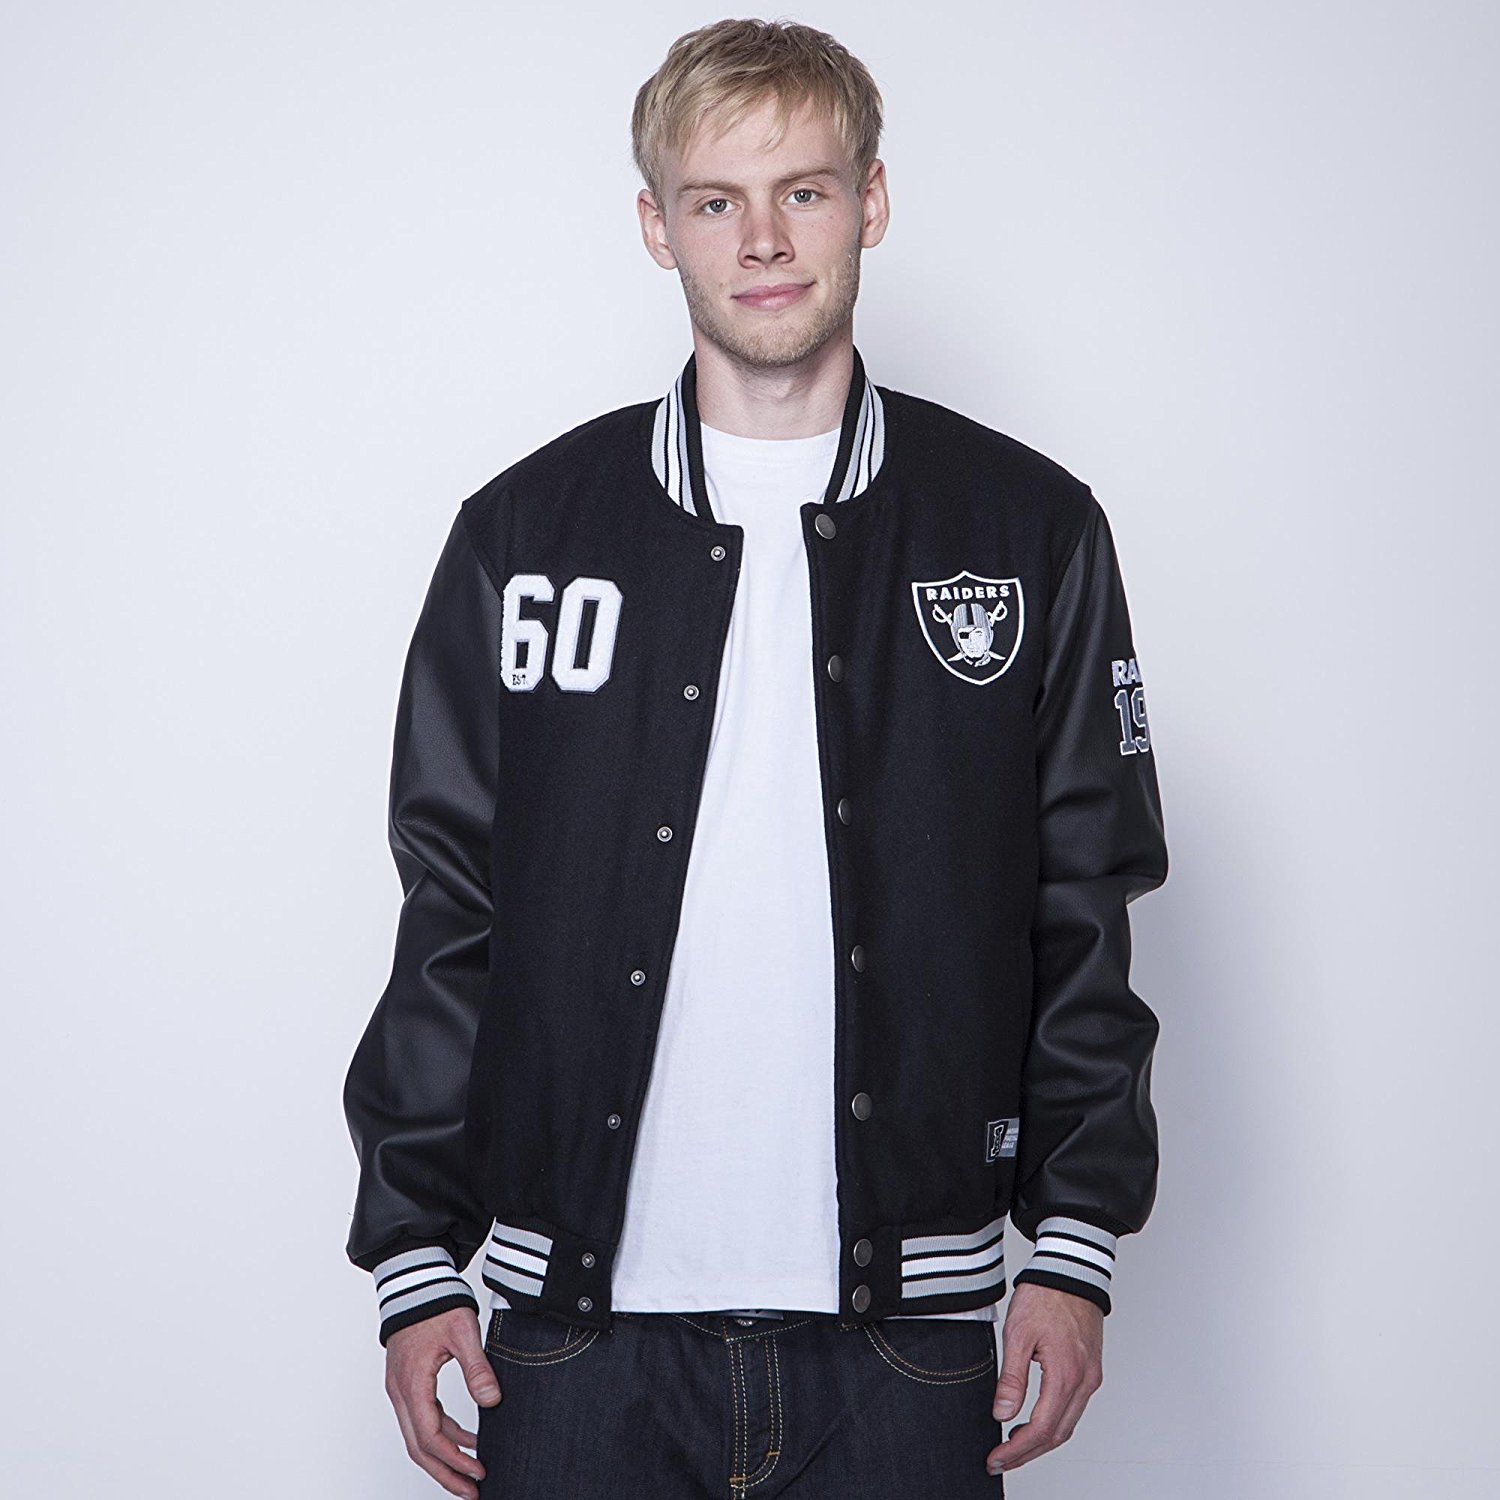 Varsity Jacket Raiders | Raiders Coat | Raiders Letterman Jacket